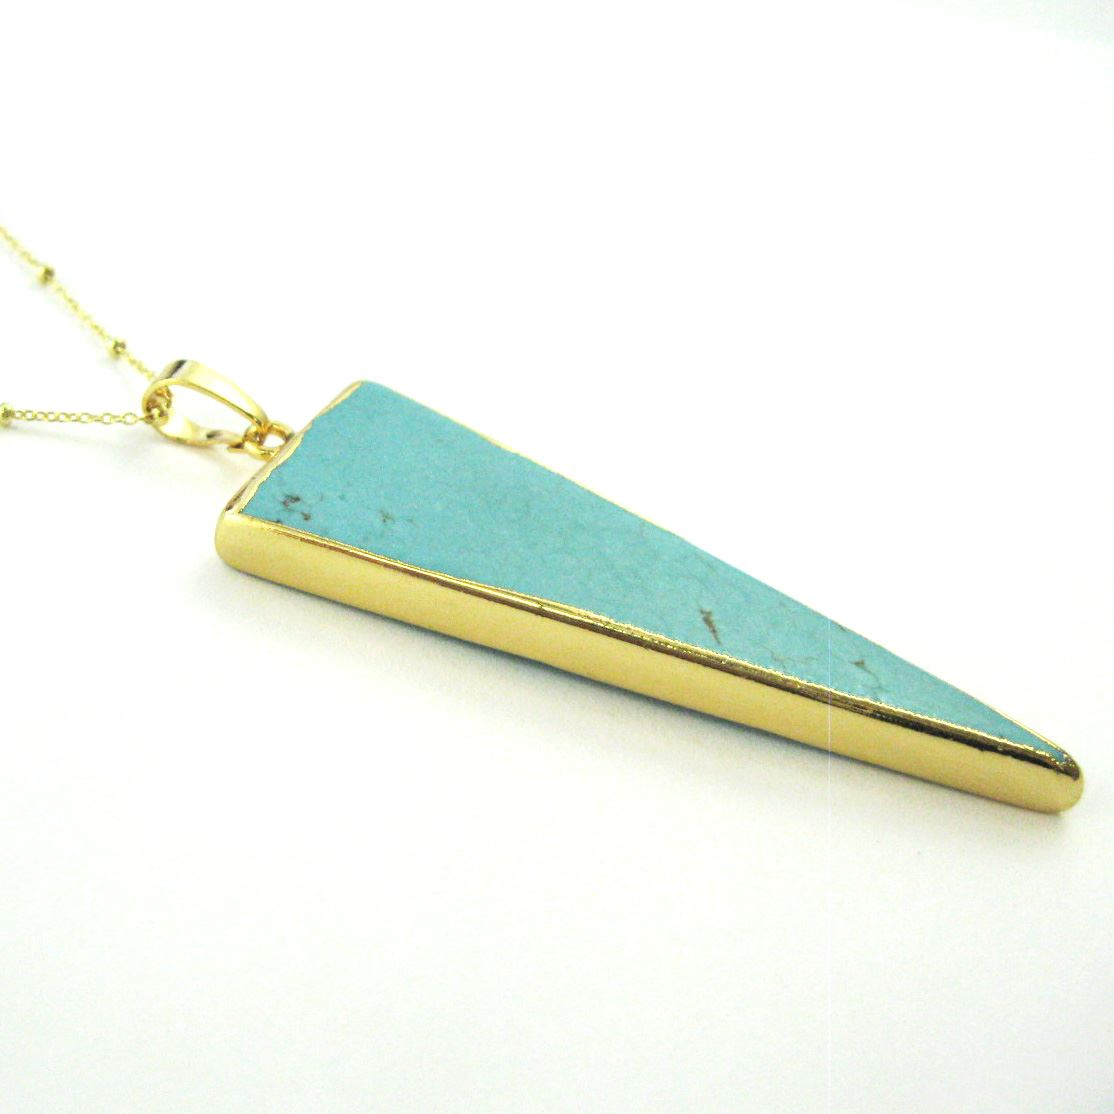 Turquoise Spike Pendant Necklace -Turquoise Triangle and Gold Necklace - Gold plated Sterling Silver Beaded Necklace Chain